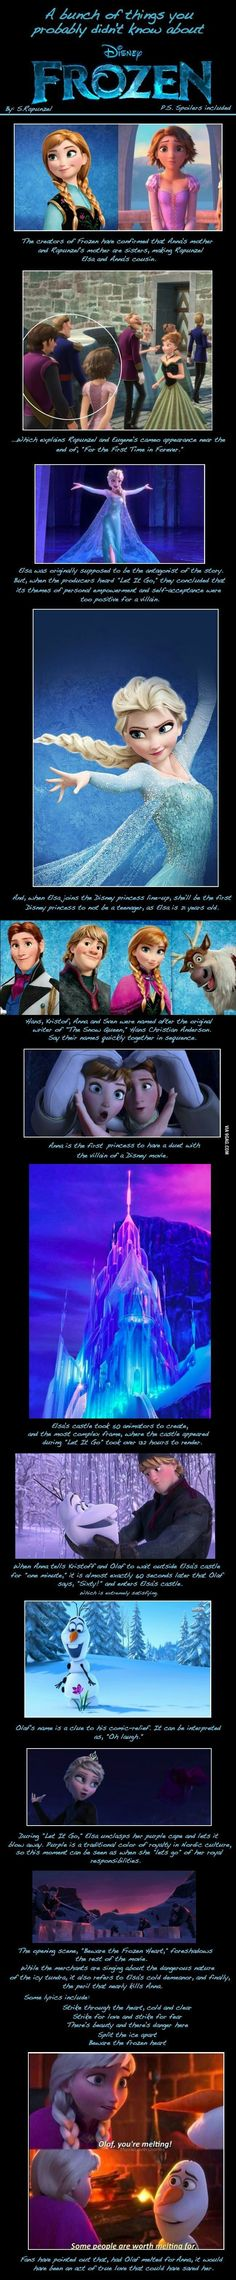 Some stuff about Frozen that you probably didn't know (damnit Olaf!! you're too sweet!!)